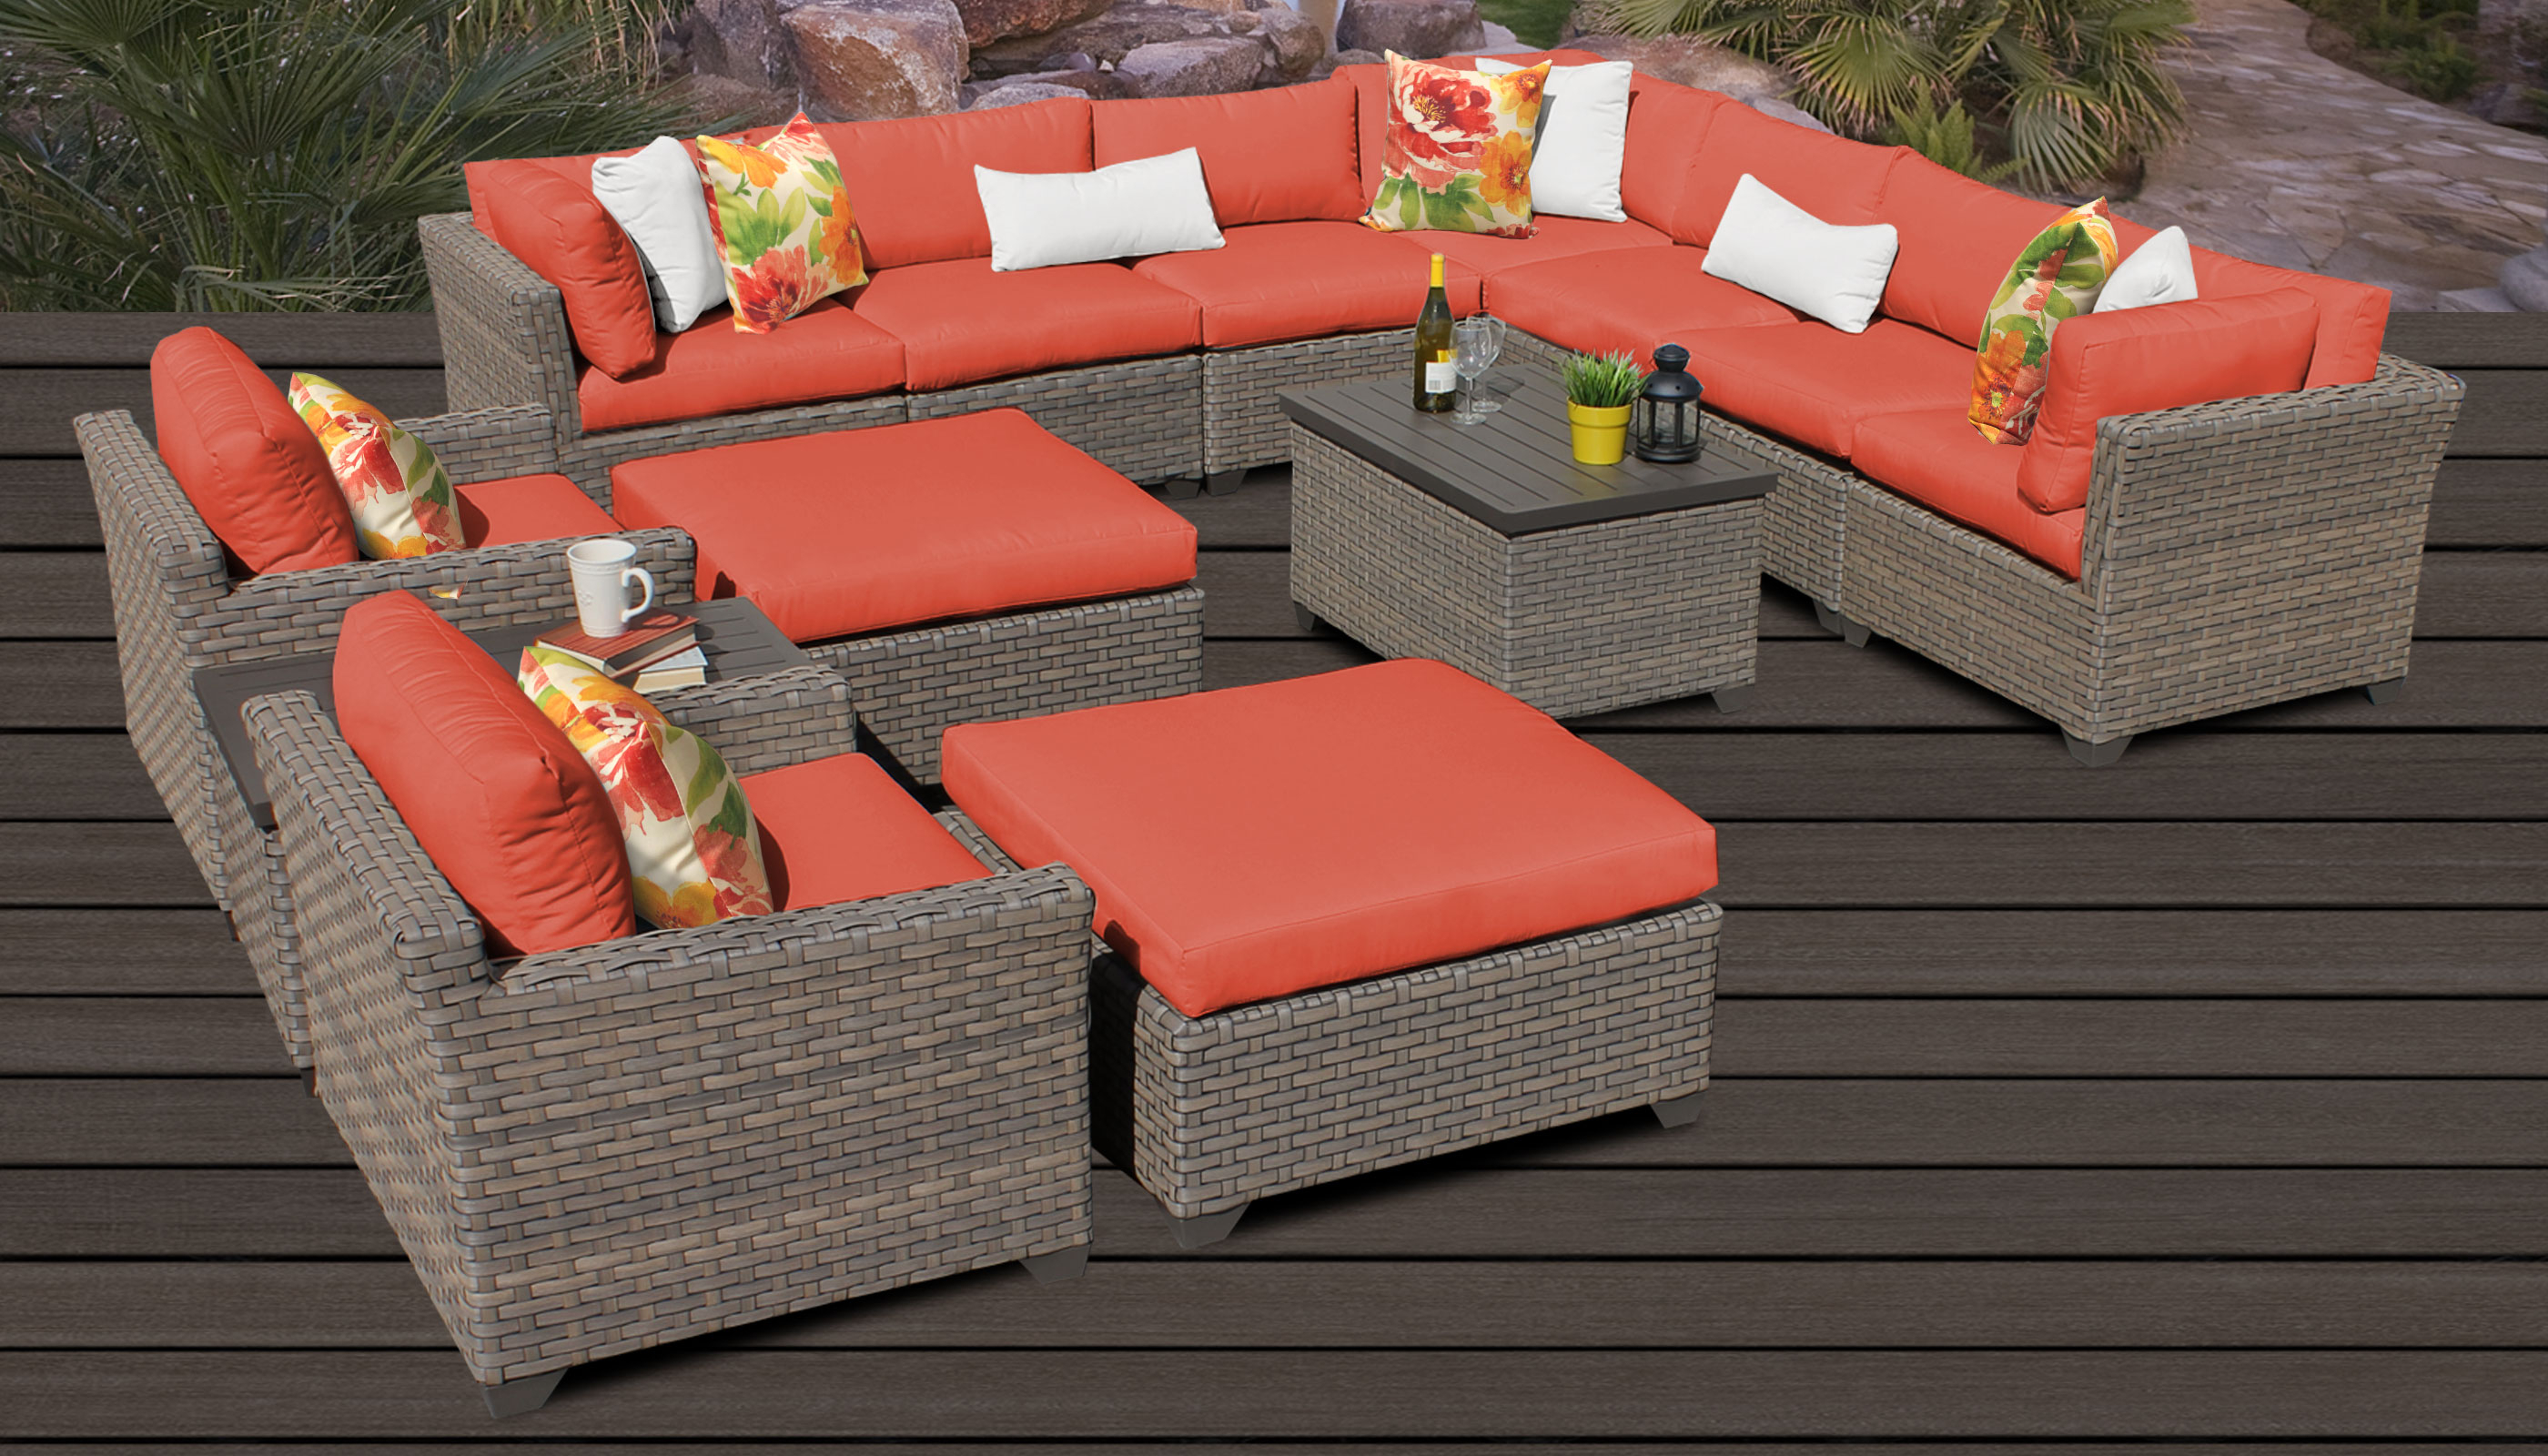 Outdoor 13 Piece Wicker Patio Sets With Cushions In Latest Monterey 13 Piece Outdoor Wicker Patio Furniture Set 13a (View 20 of 25)